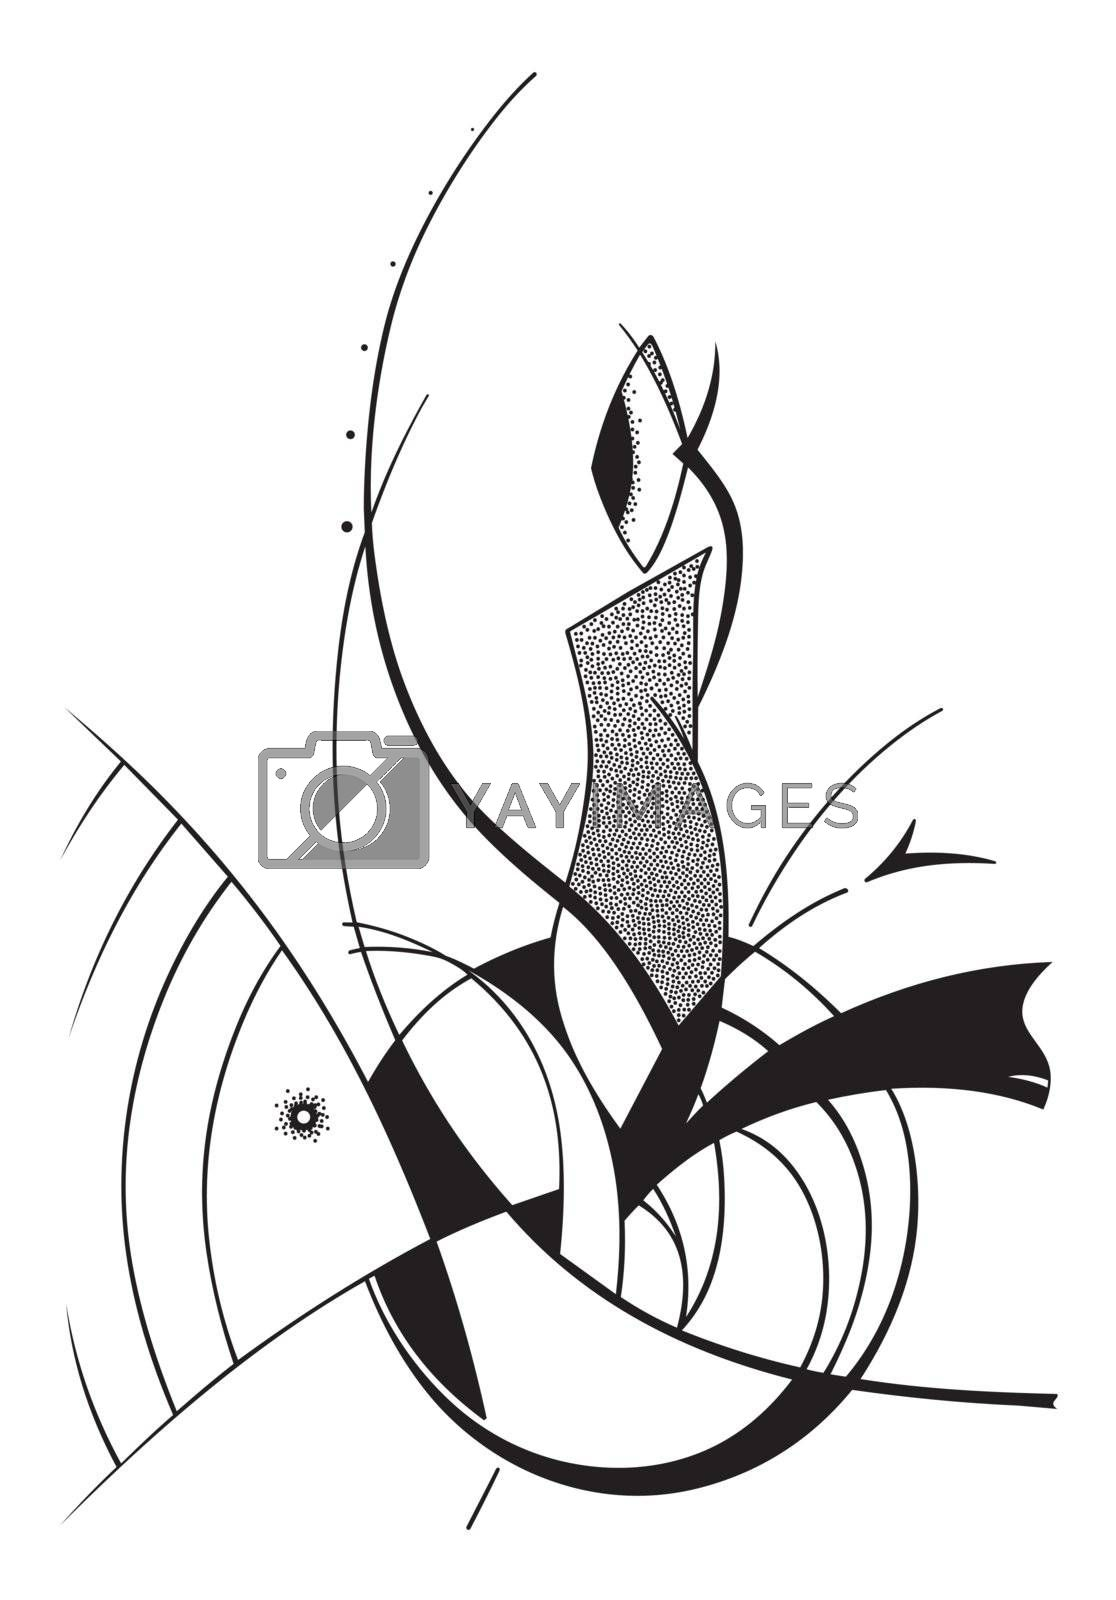 Fantastic abstract vector illustration in black on a white background